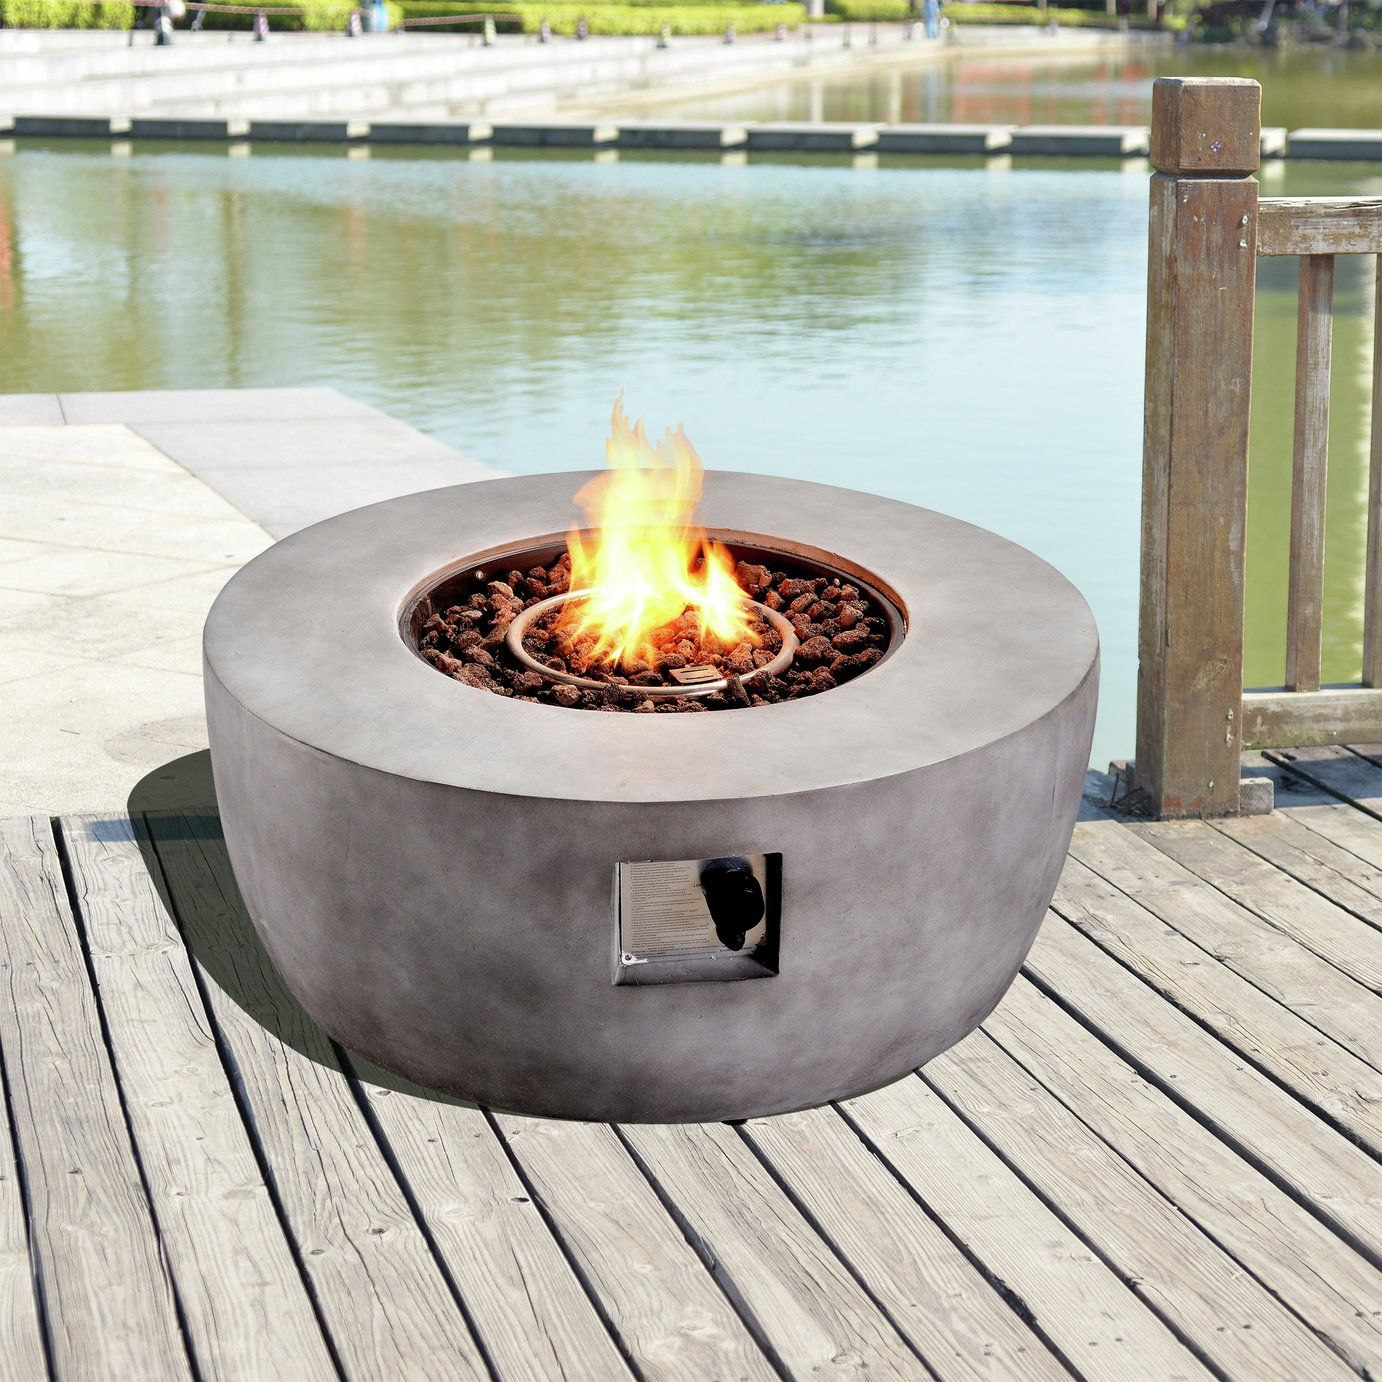 Buy Peaktop Hf36501aa Uk Gas Fire Pit With Cover Fire Pits Argos In 2021 Gas Firepit Propane Fire Pit Fire Pit Contemporary outdoor gas fire pits uk